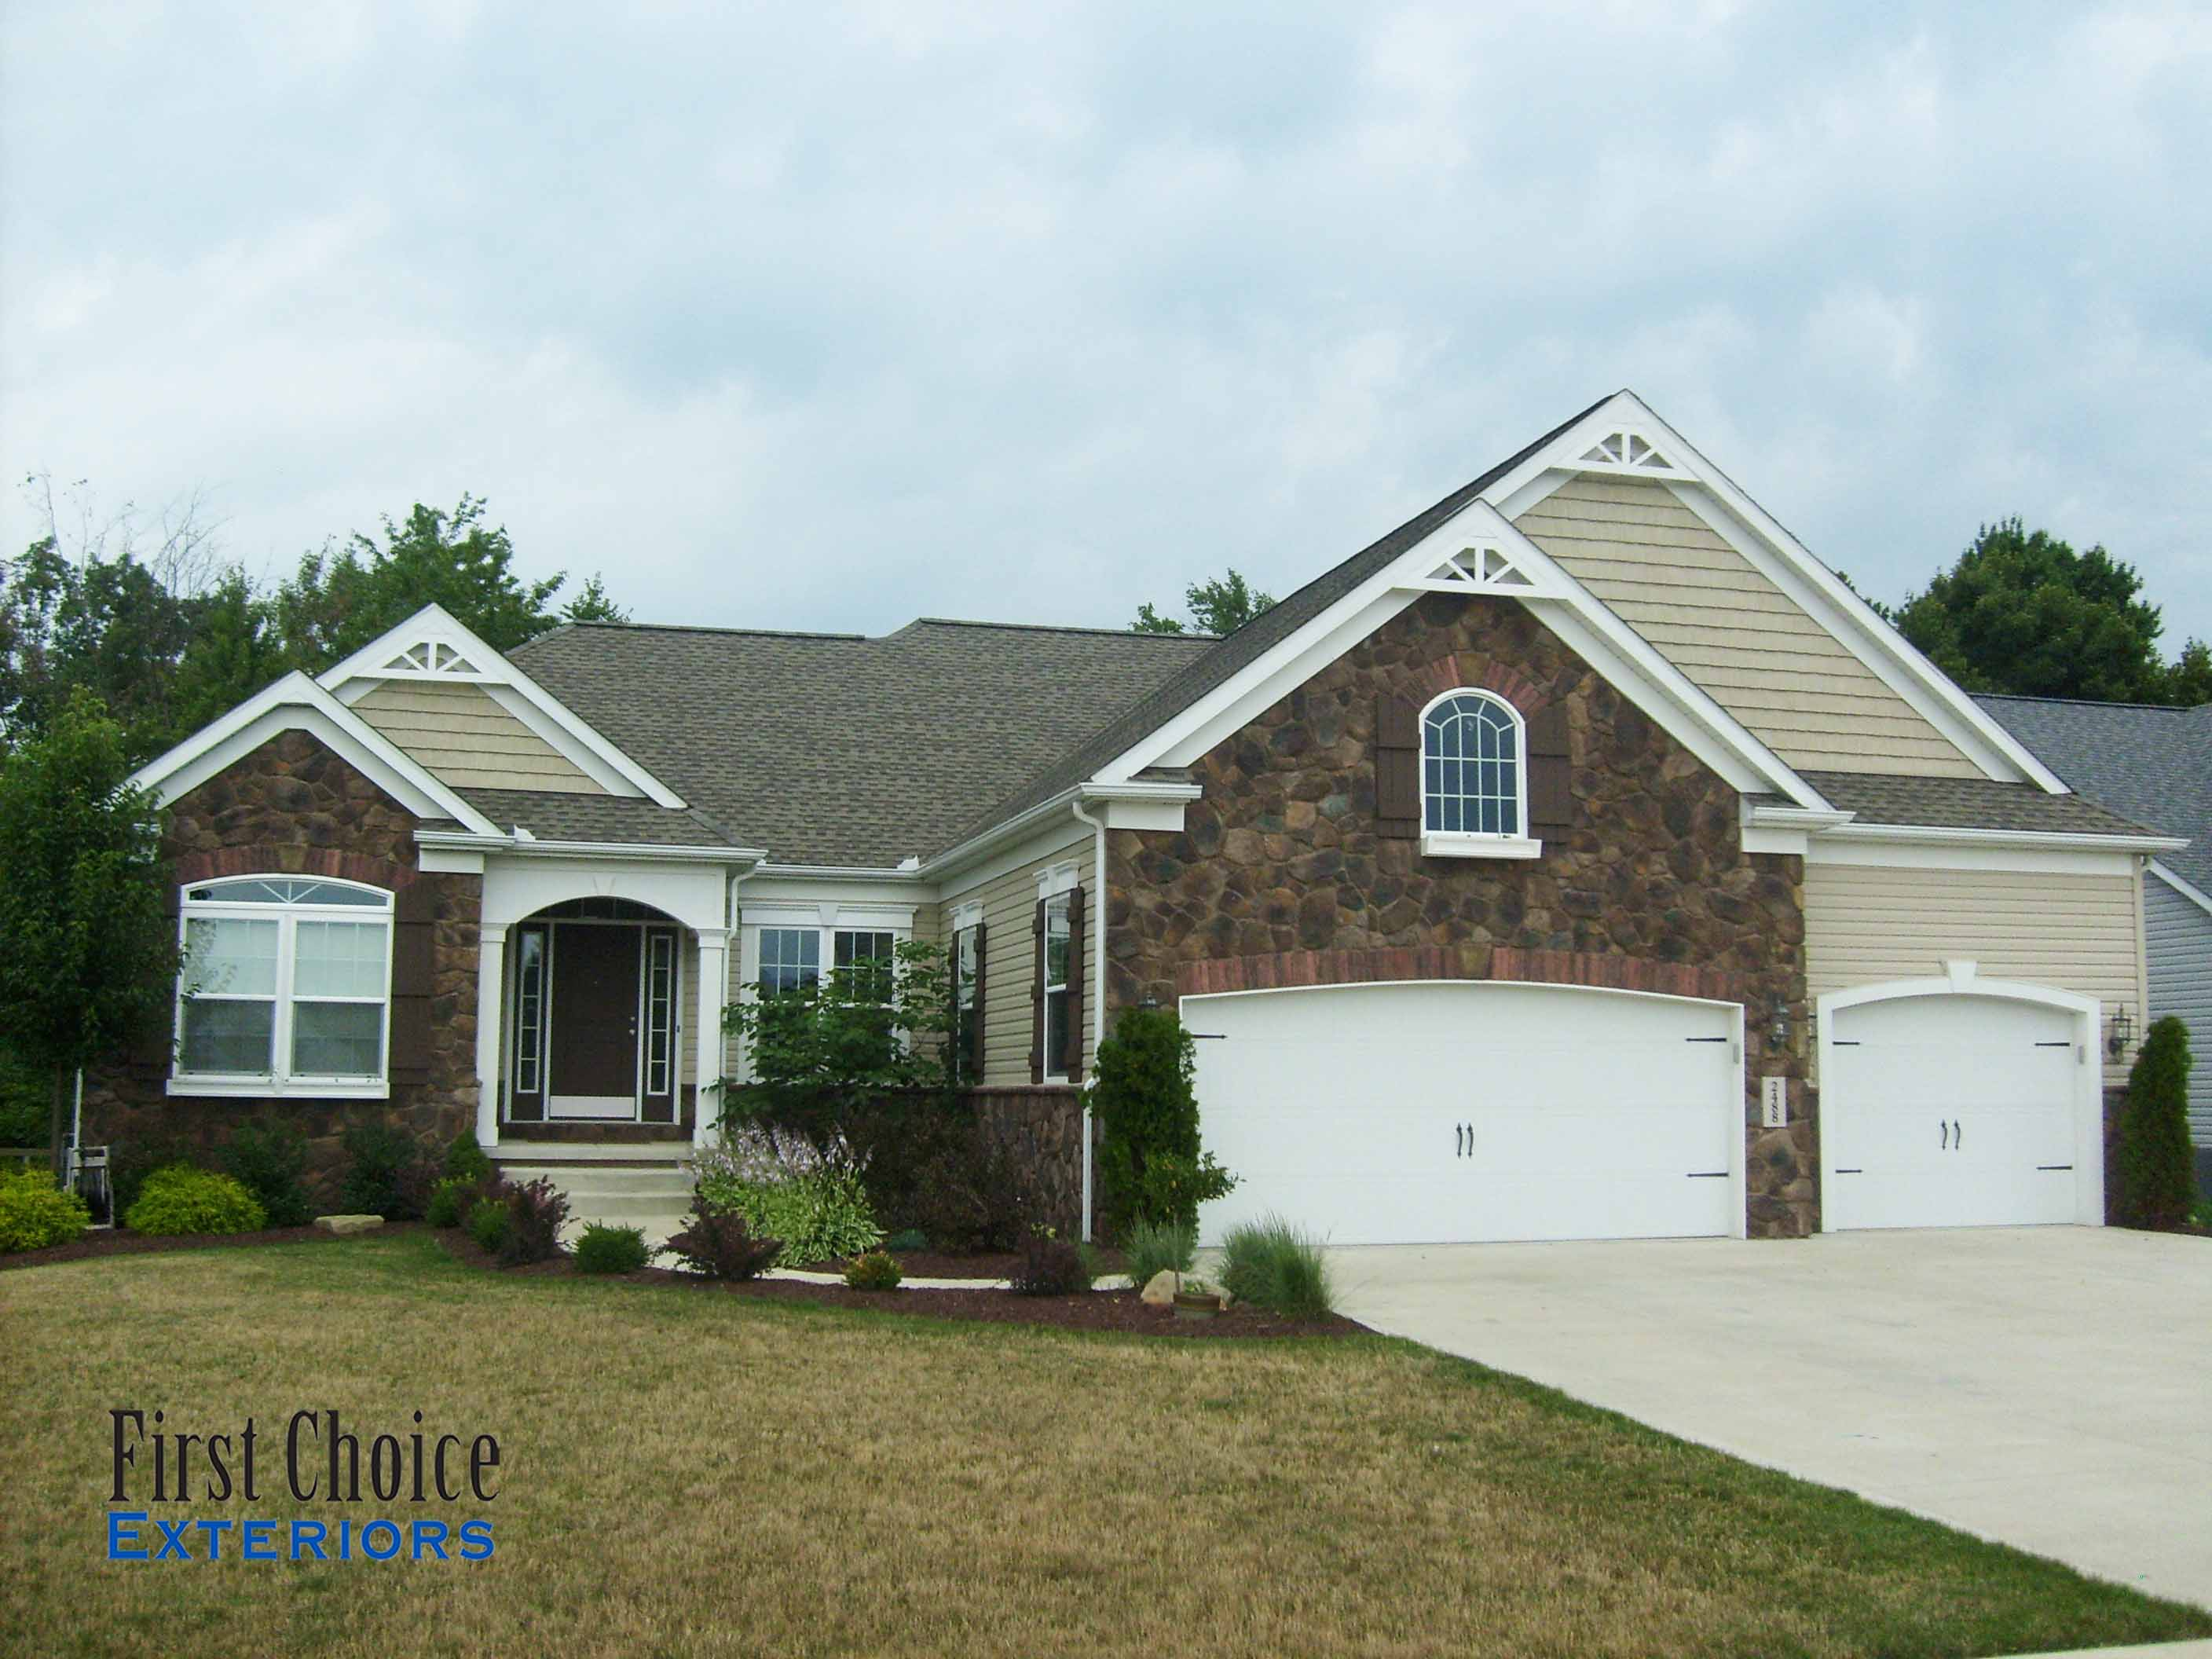 Home: First Choice Exteriors